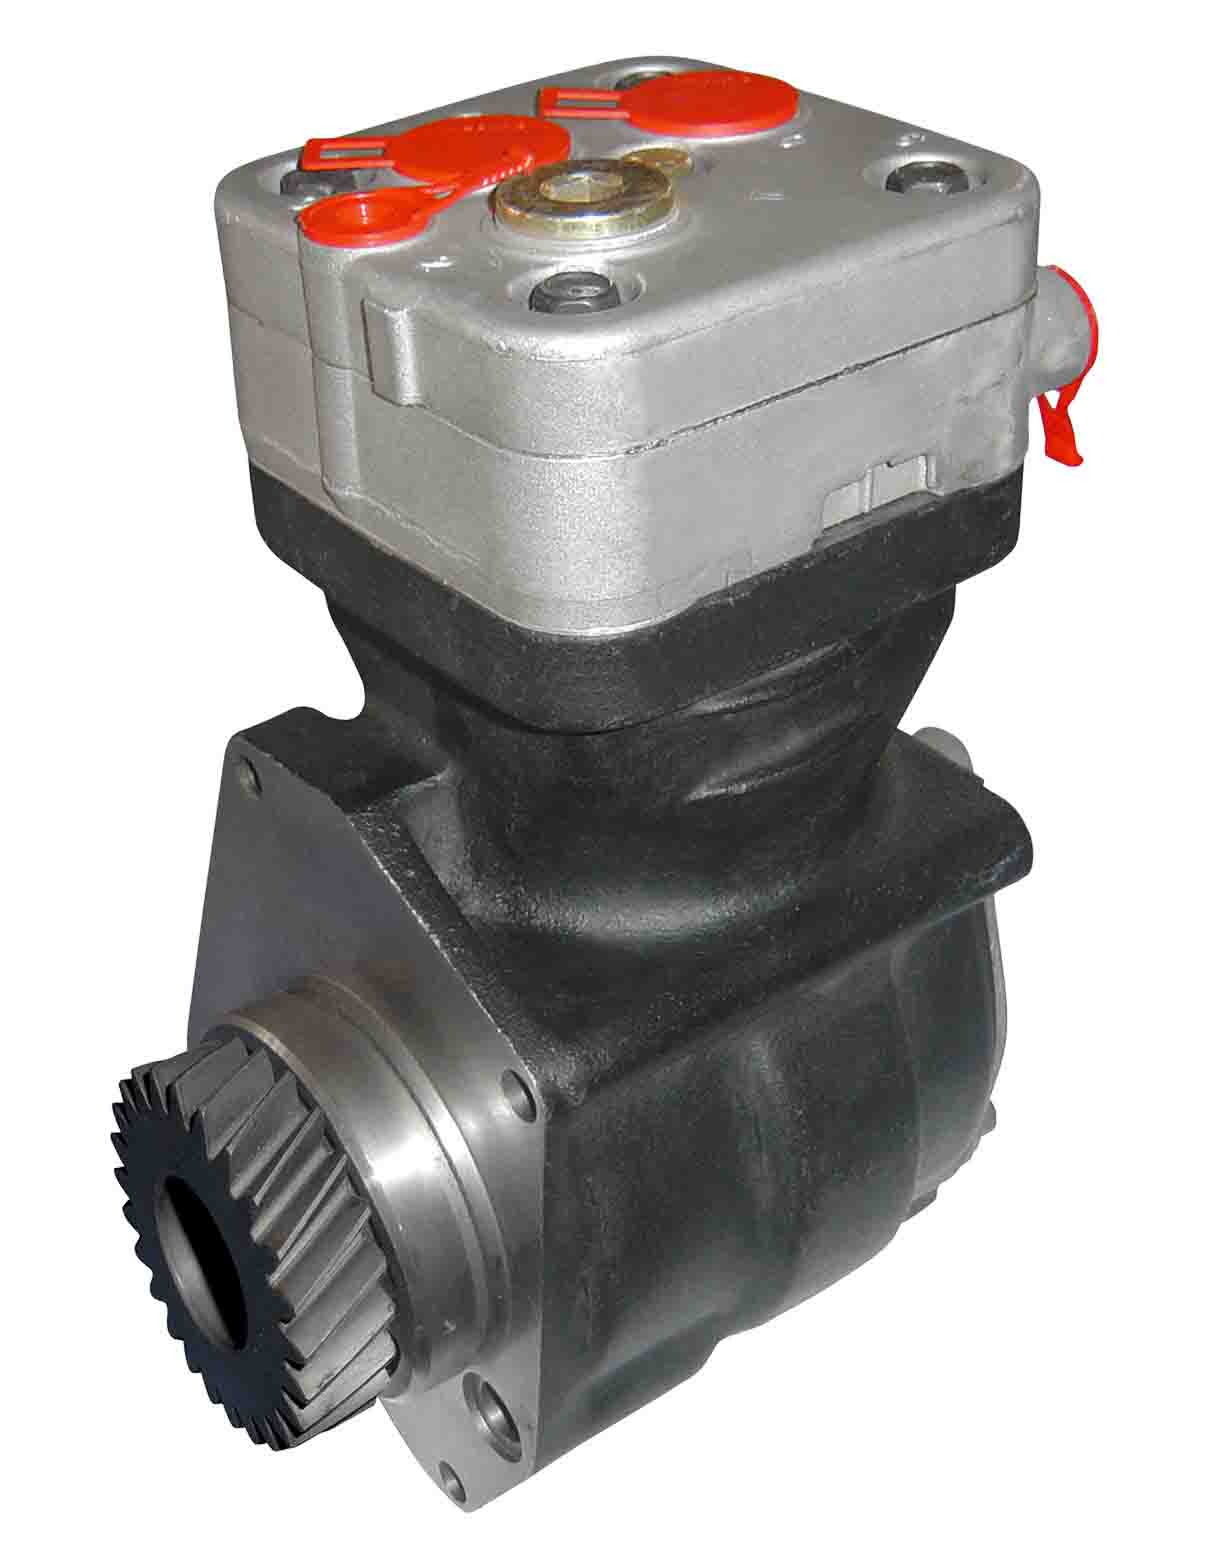 MERCEDES AIR COMPRESSOR ARC-EXP.303973 4571300515